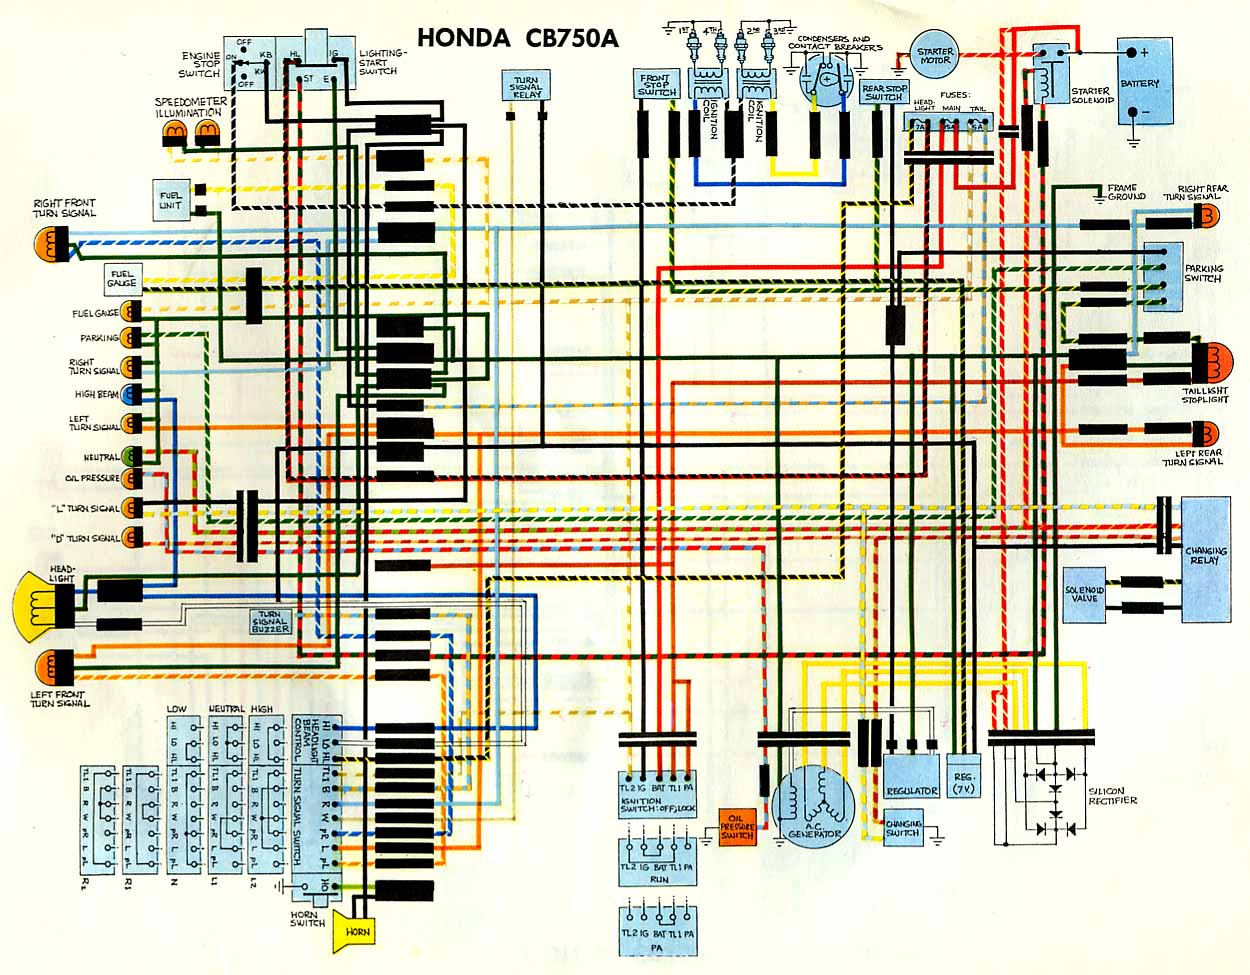 wiring diagrams rh oregonmotorcycleparts com 1977 honda cb550 wiring diagram 1977 honda cb750 wiring diagram